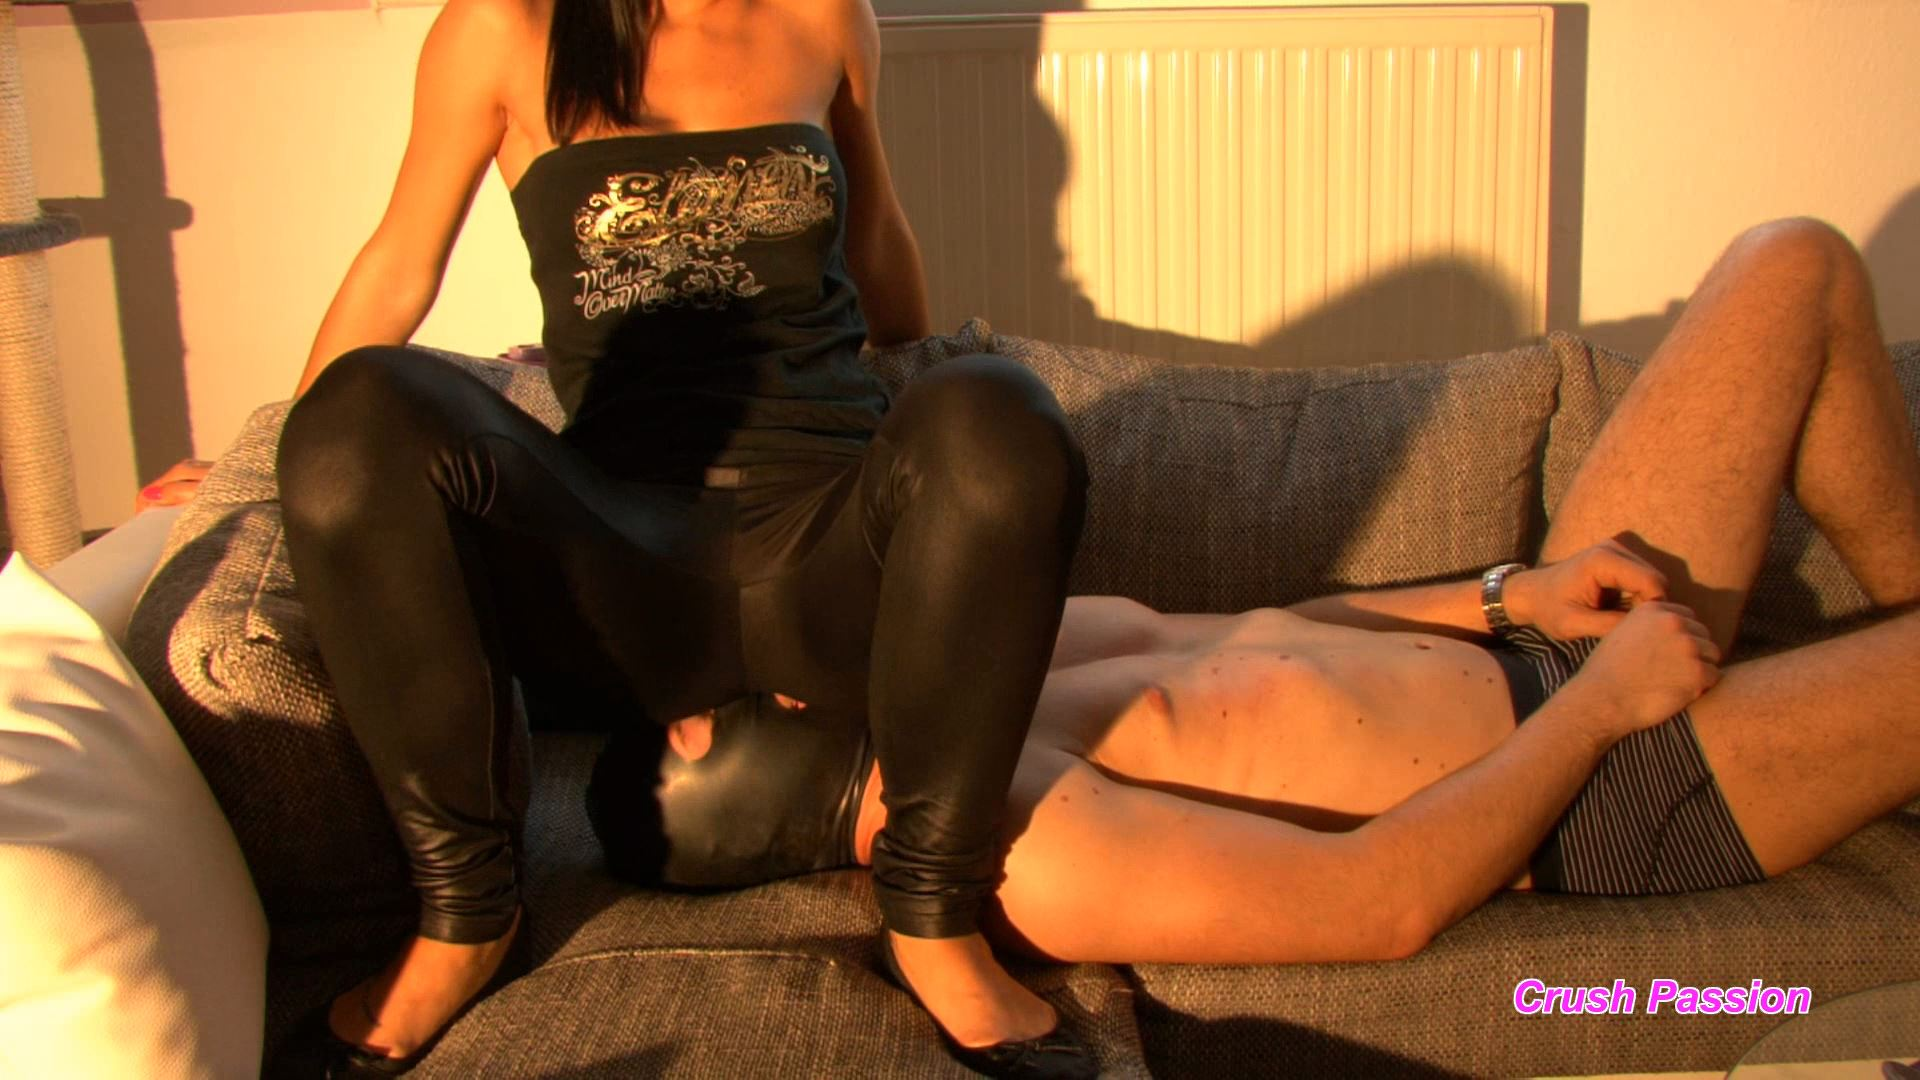 Mistress Chanel In Scene: Slave Gets Punished With Facesitting - CLIPS4SALE / CRUSH PASSION - FULL HD/1080p/MP4